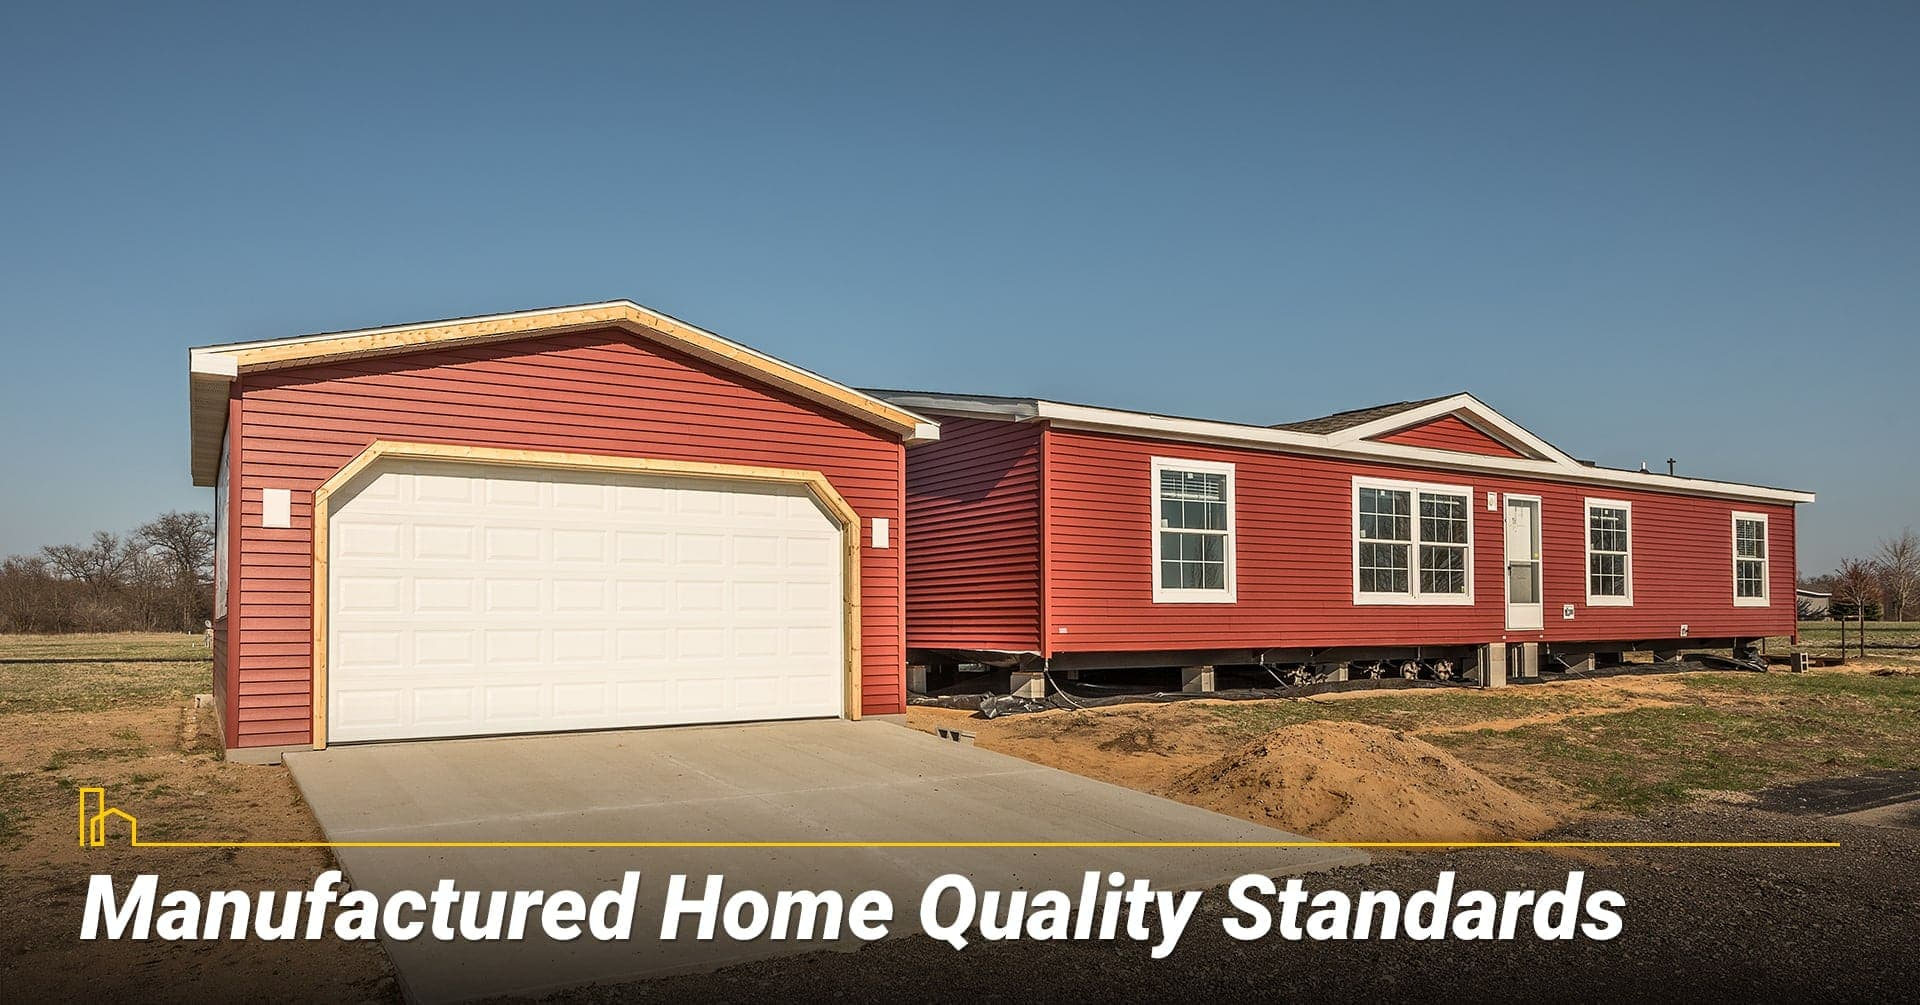 Manufactured Home Quality Standards, quality of a manufactured home